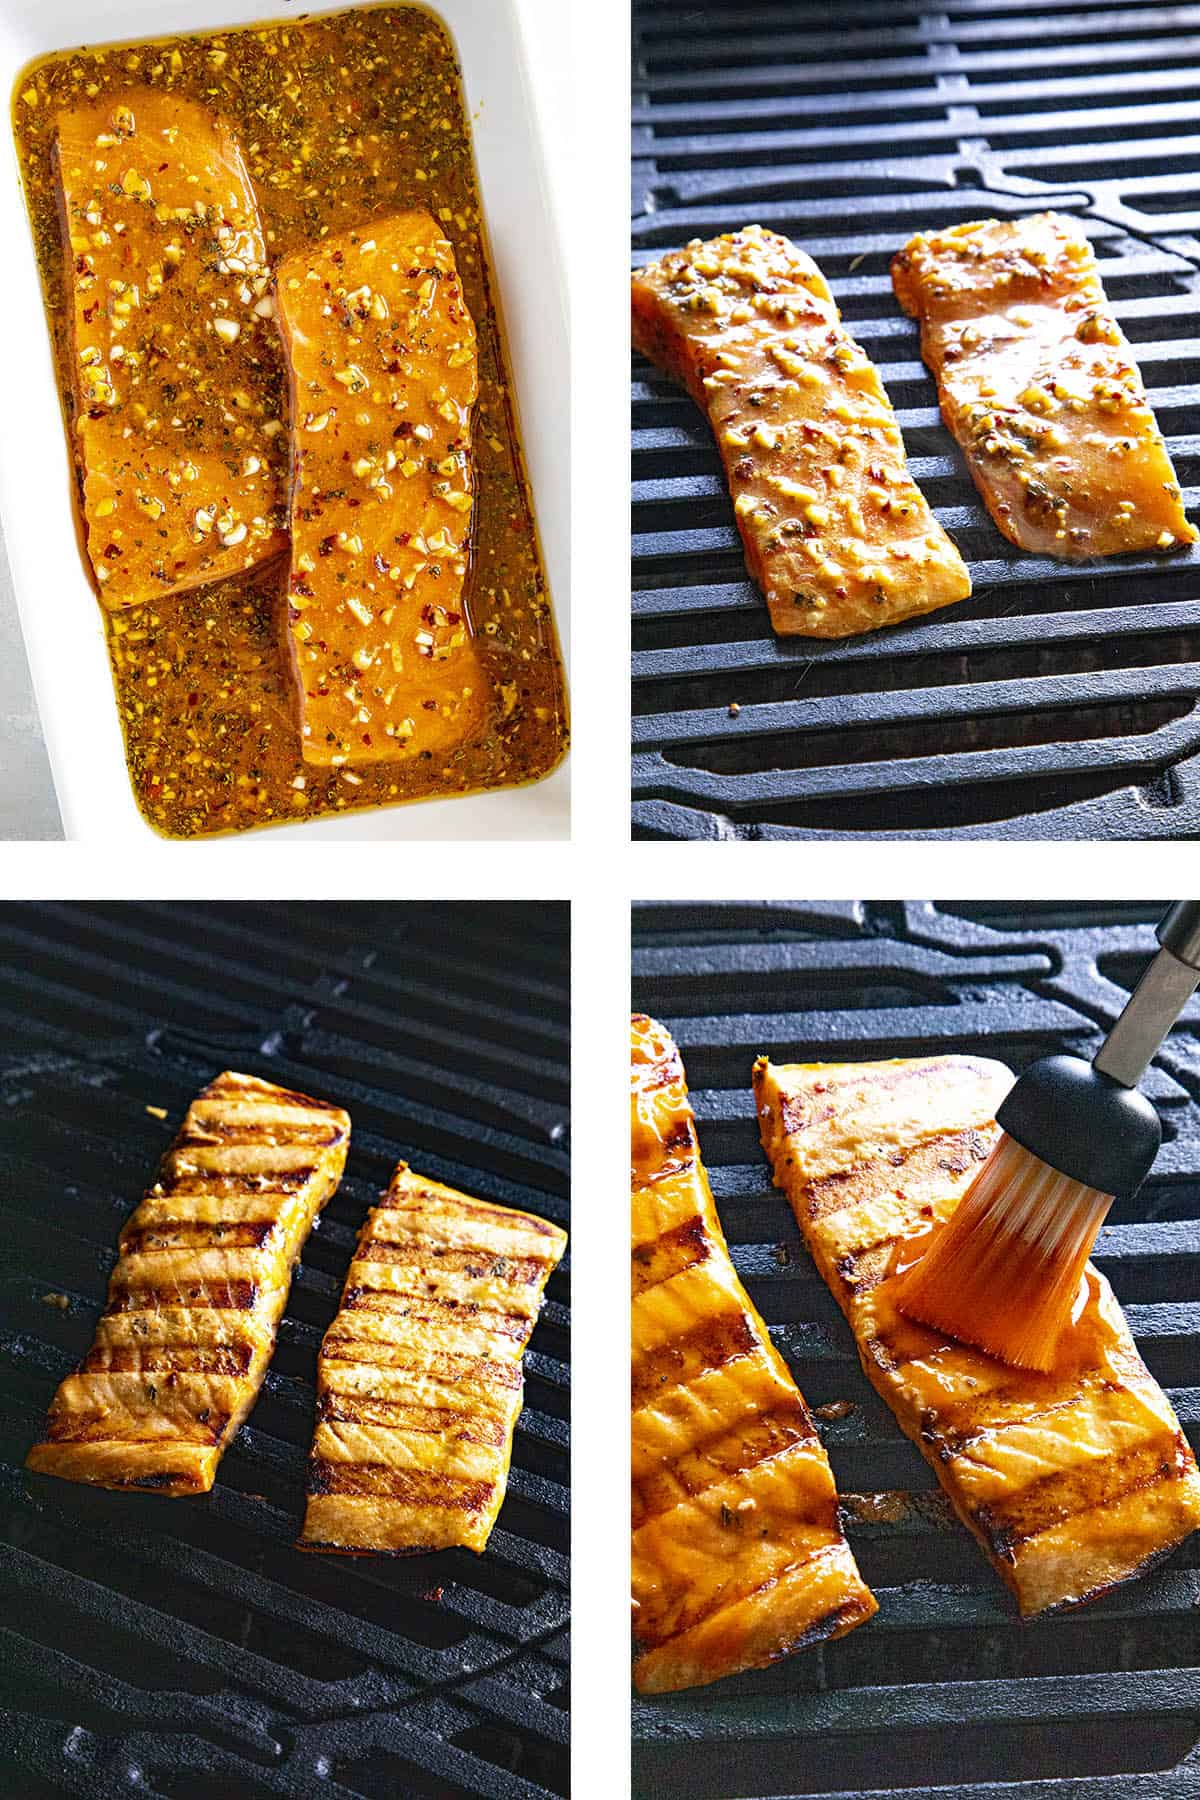 Steps for making grilled salmon with honey sriracha glaze, including marinating, grilling and brushing with sauce